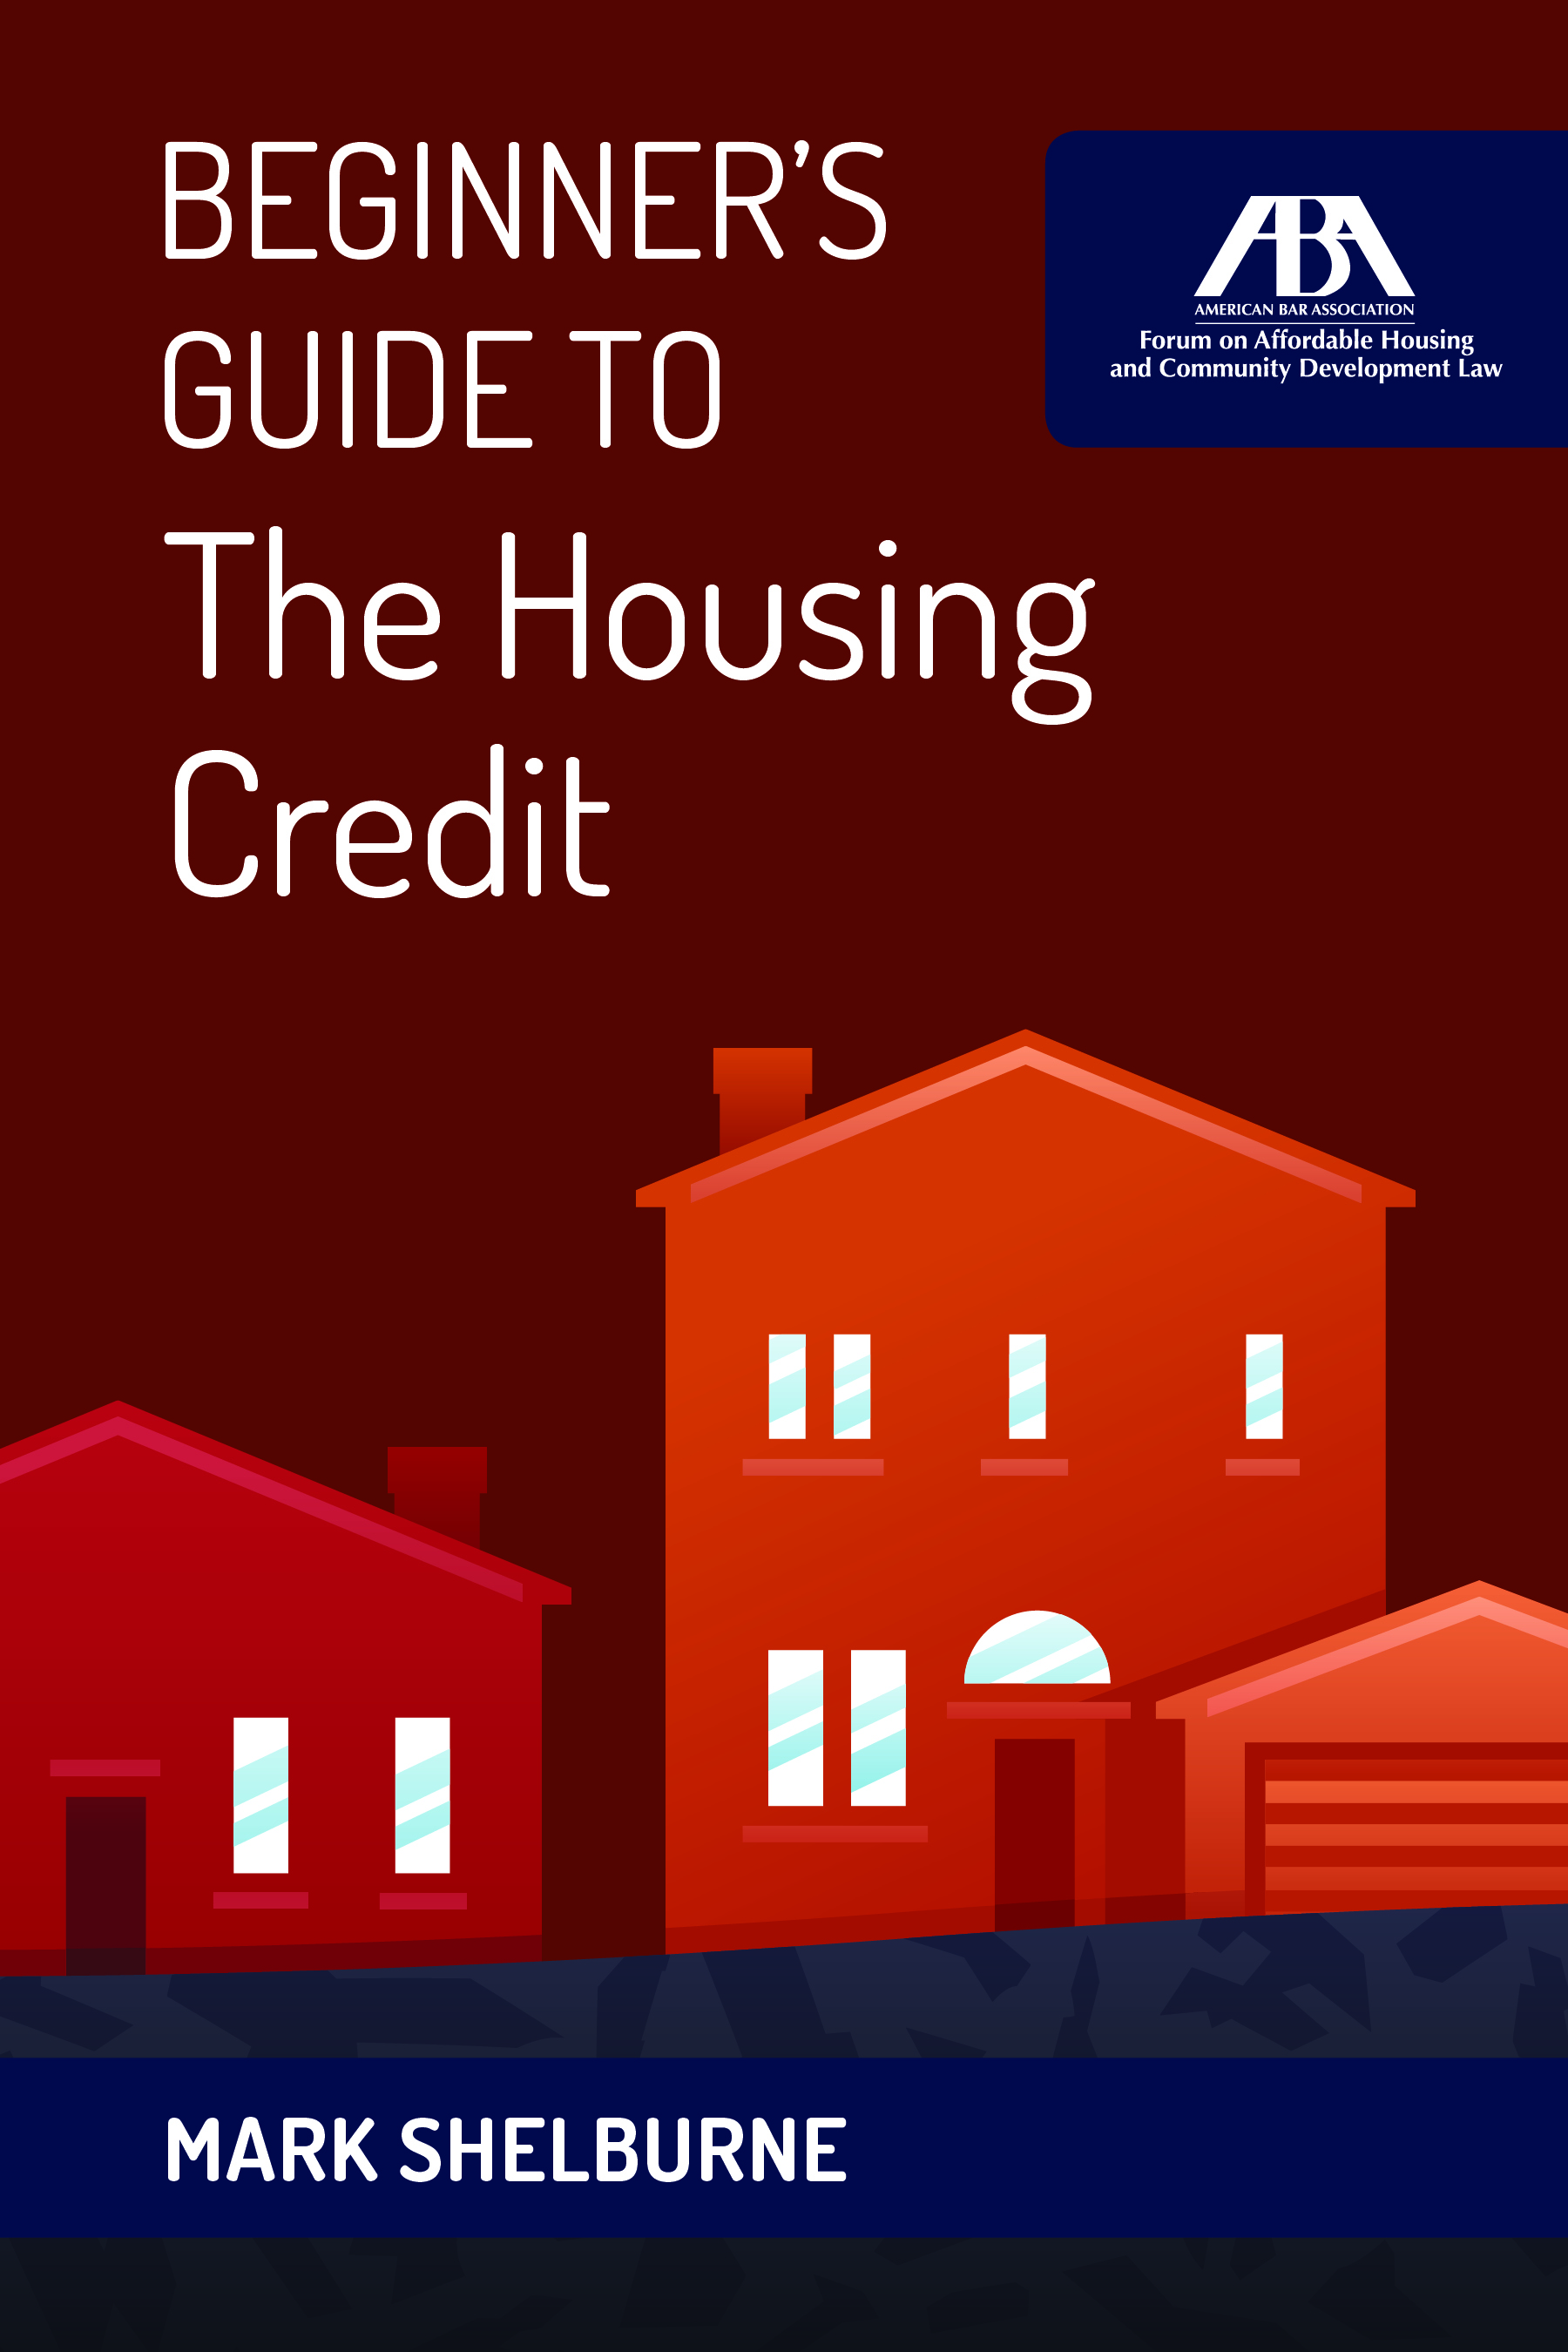 Publications | Forum on Affordable Housing and Community